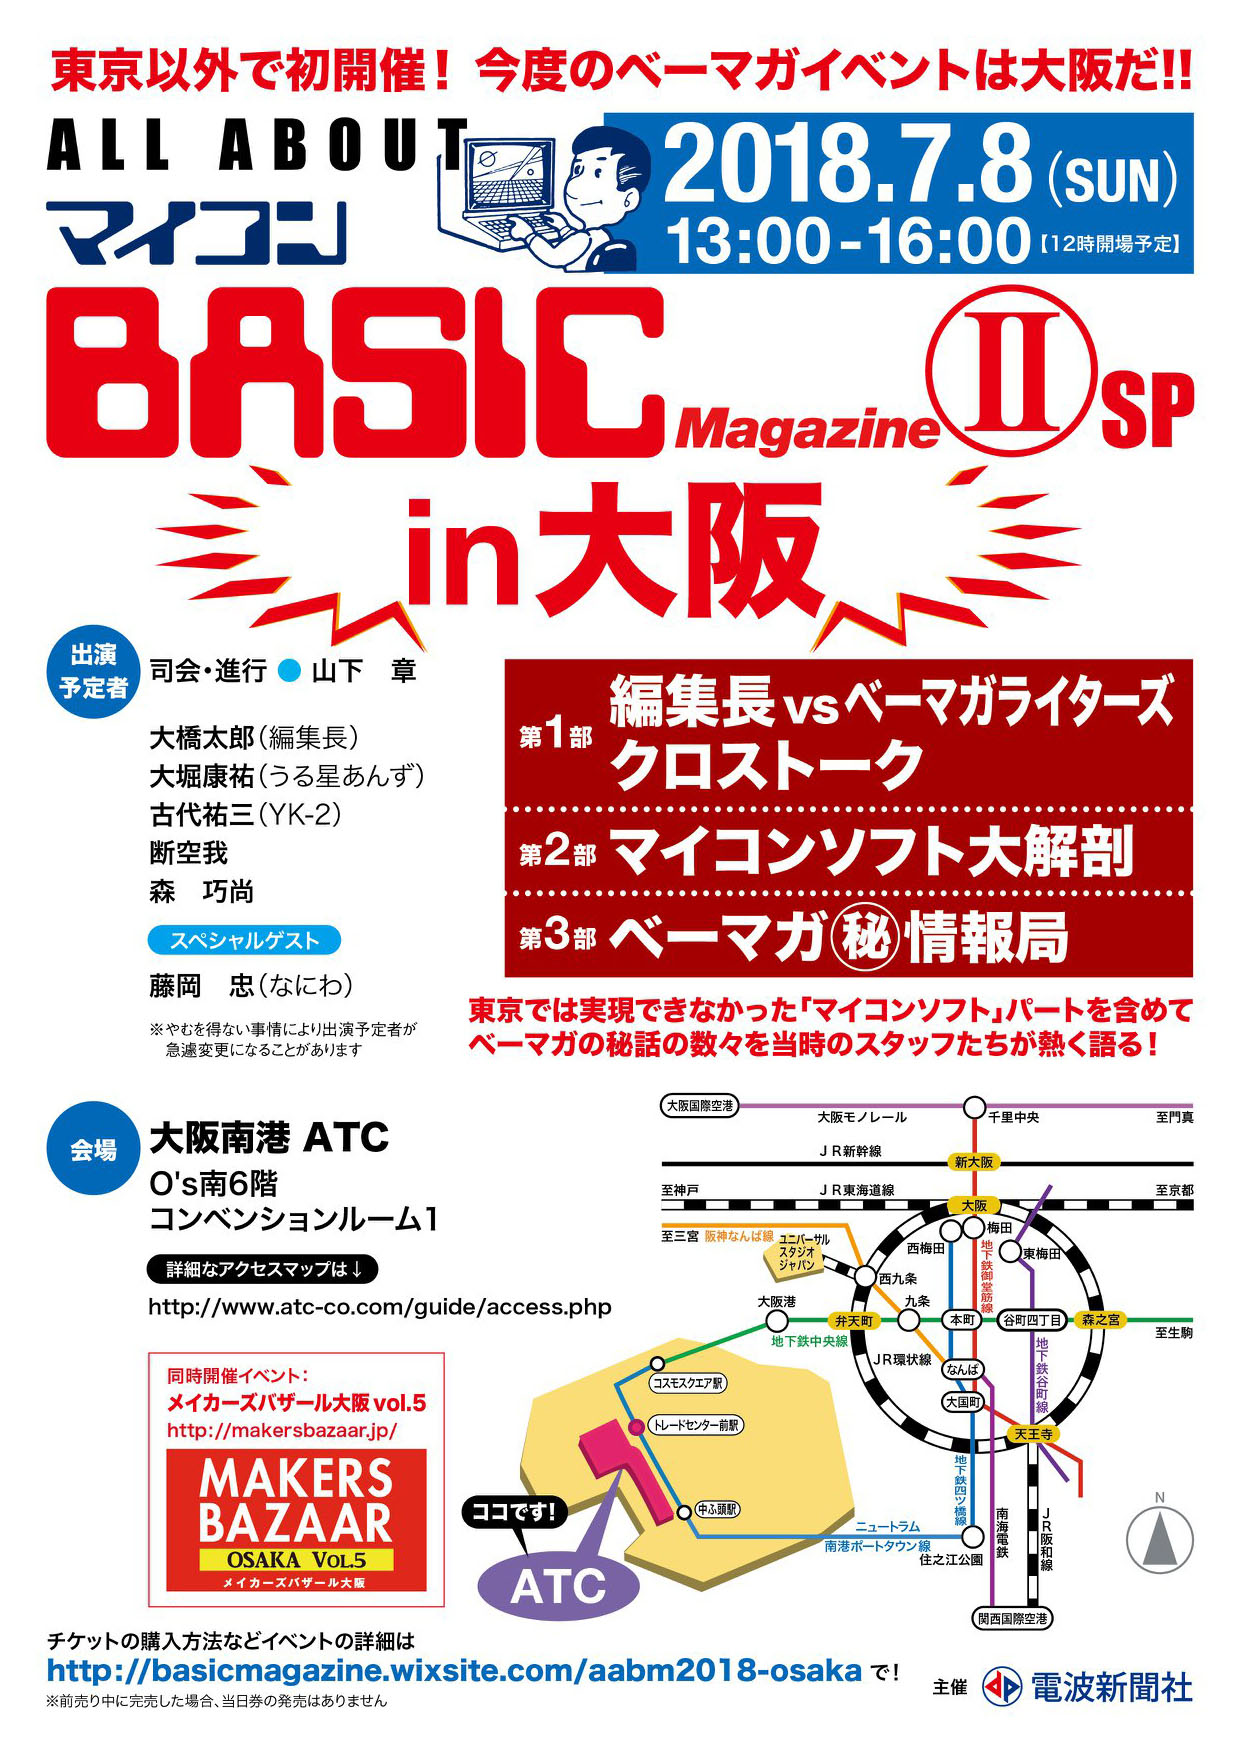 ALL ABOUT マイコンBASICマガジンⅡSP in 大阪